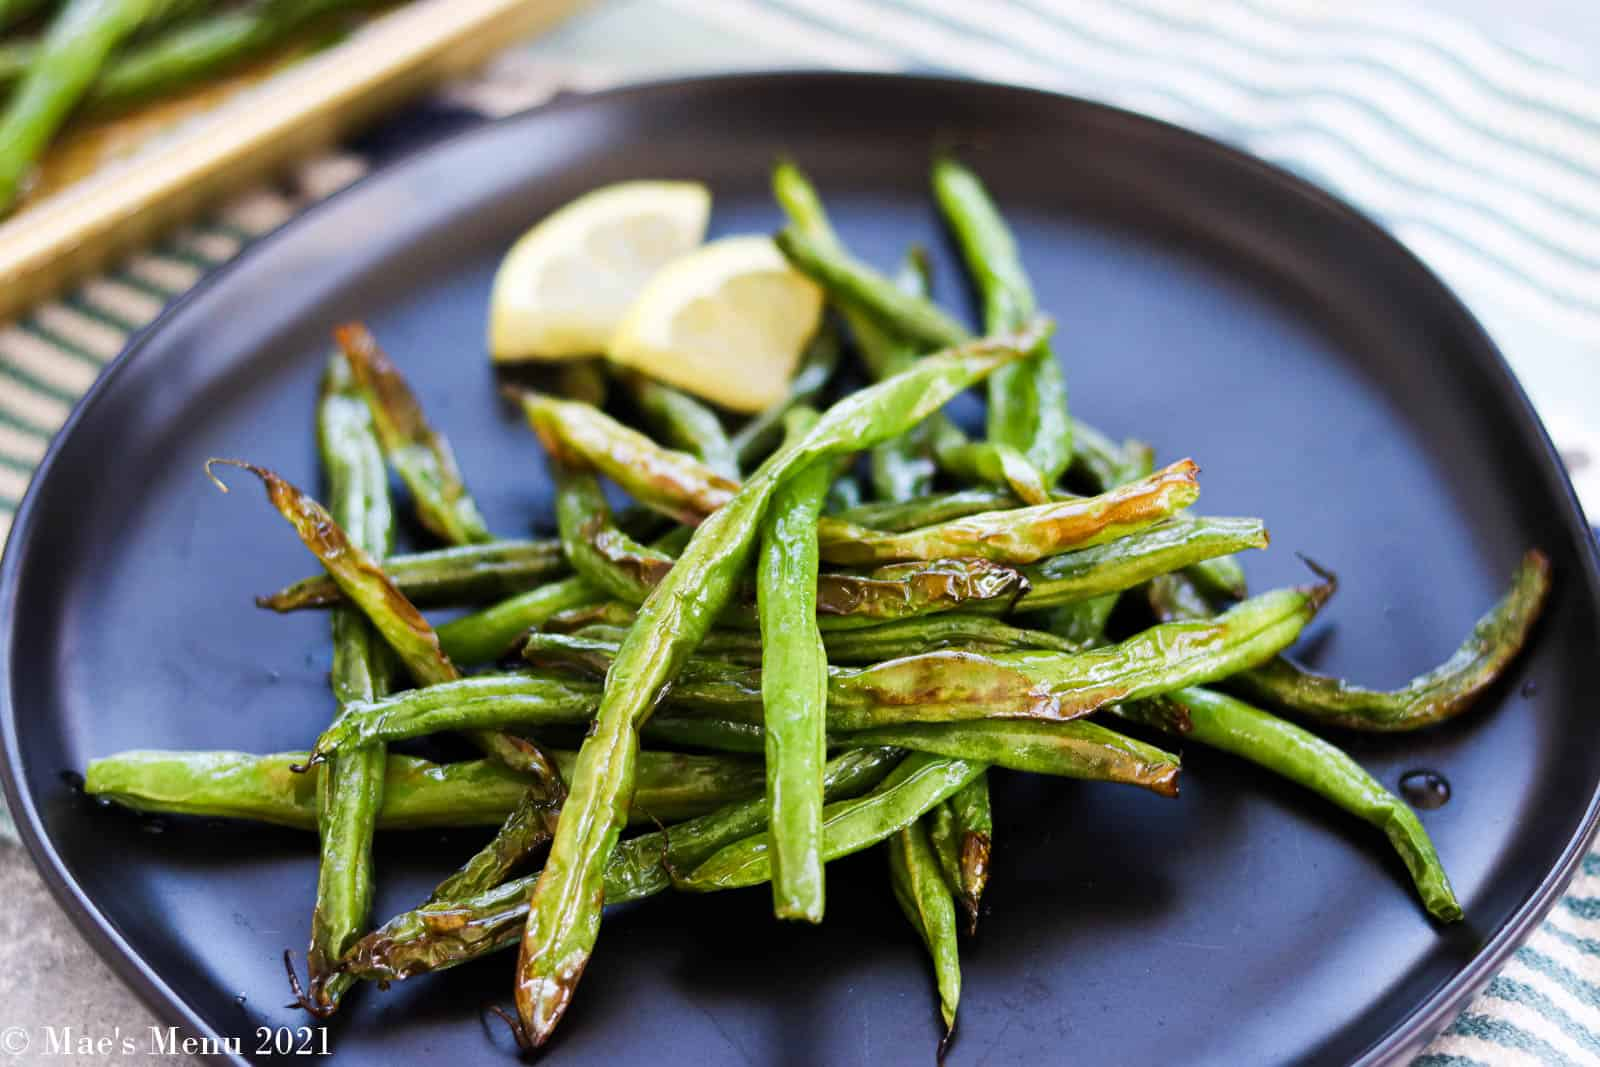 A small serving of air fryer green beans on a black plate